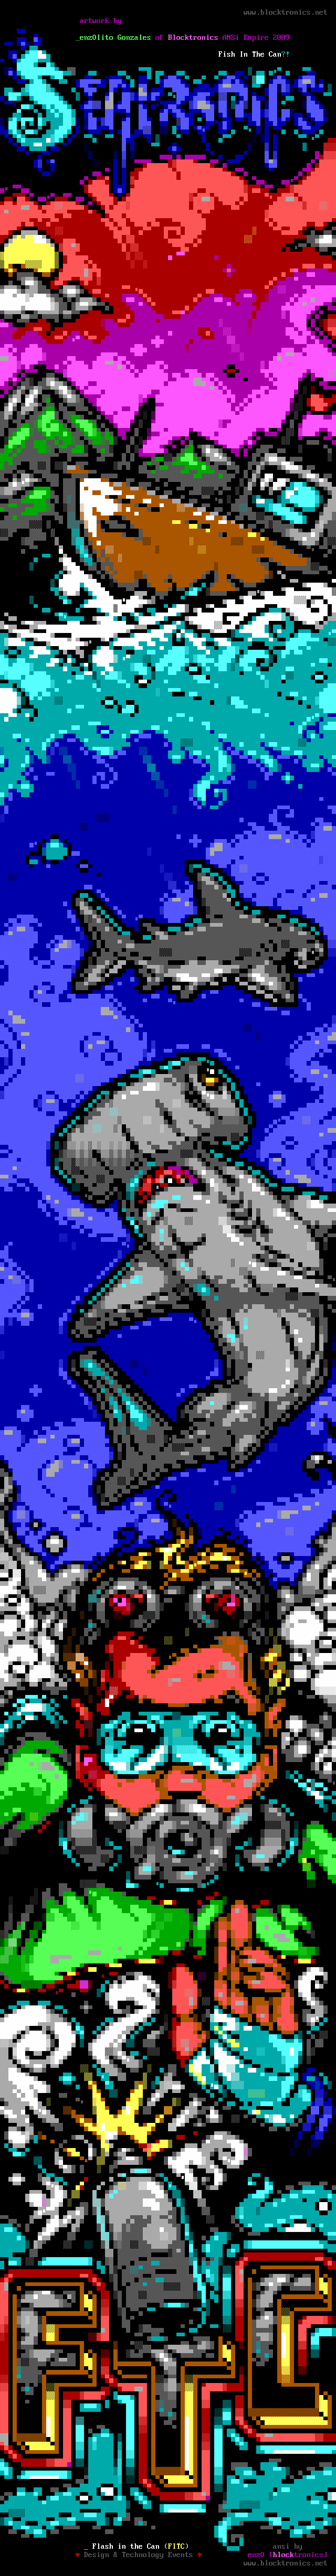 Flash in The Can ansi